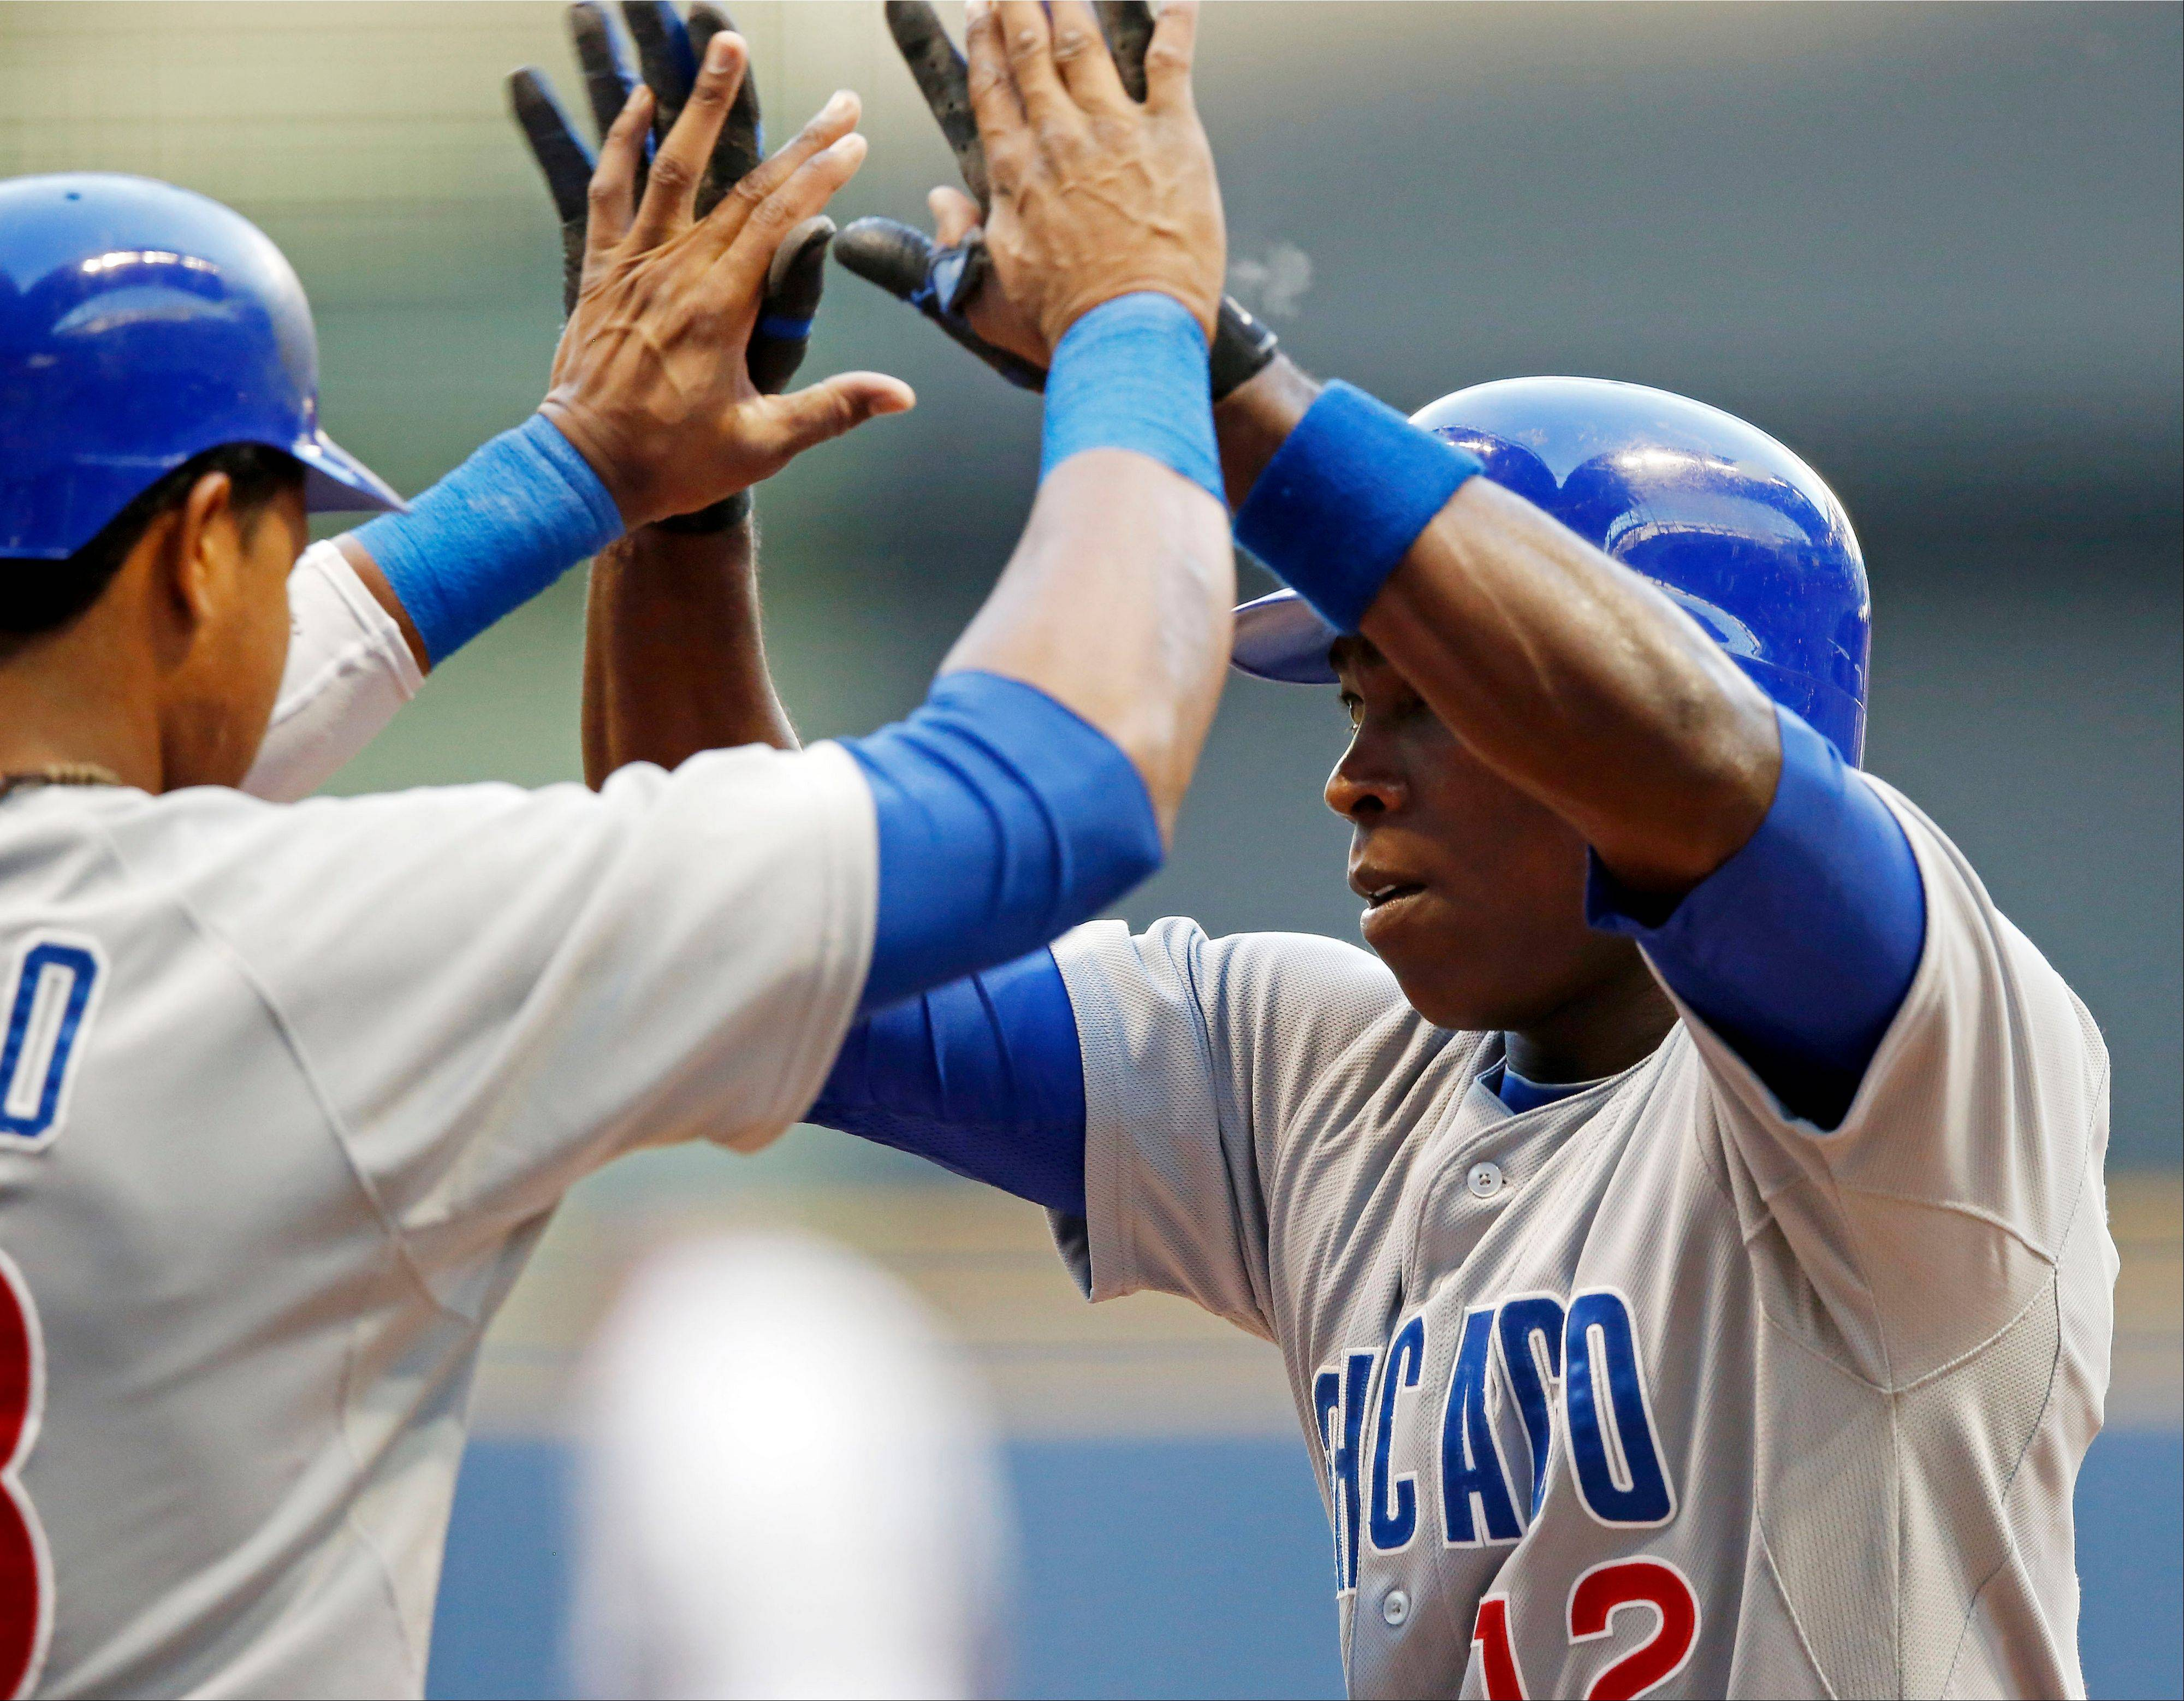 Alfonso Soriano, right, is 28 homers shy of 400 in his career. He also needs 11 homers to reach 175 with the Cubs and pass Andre Dawson for 12th all time on the team's list.